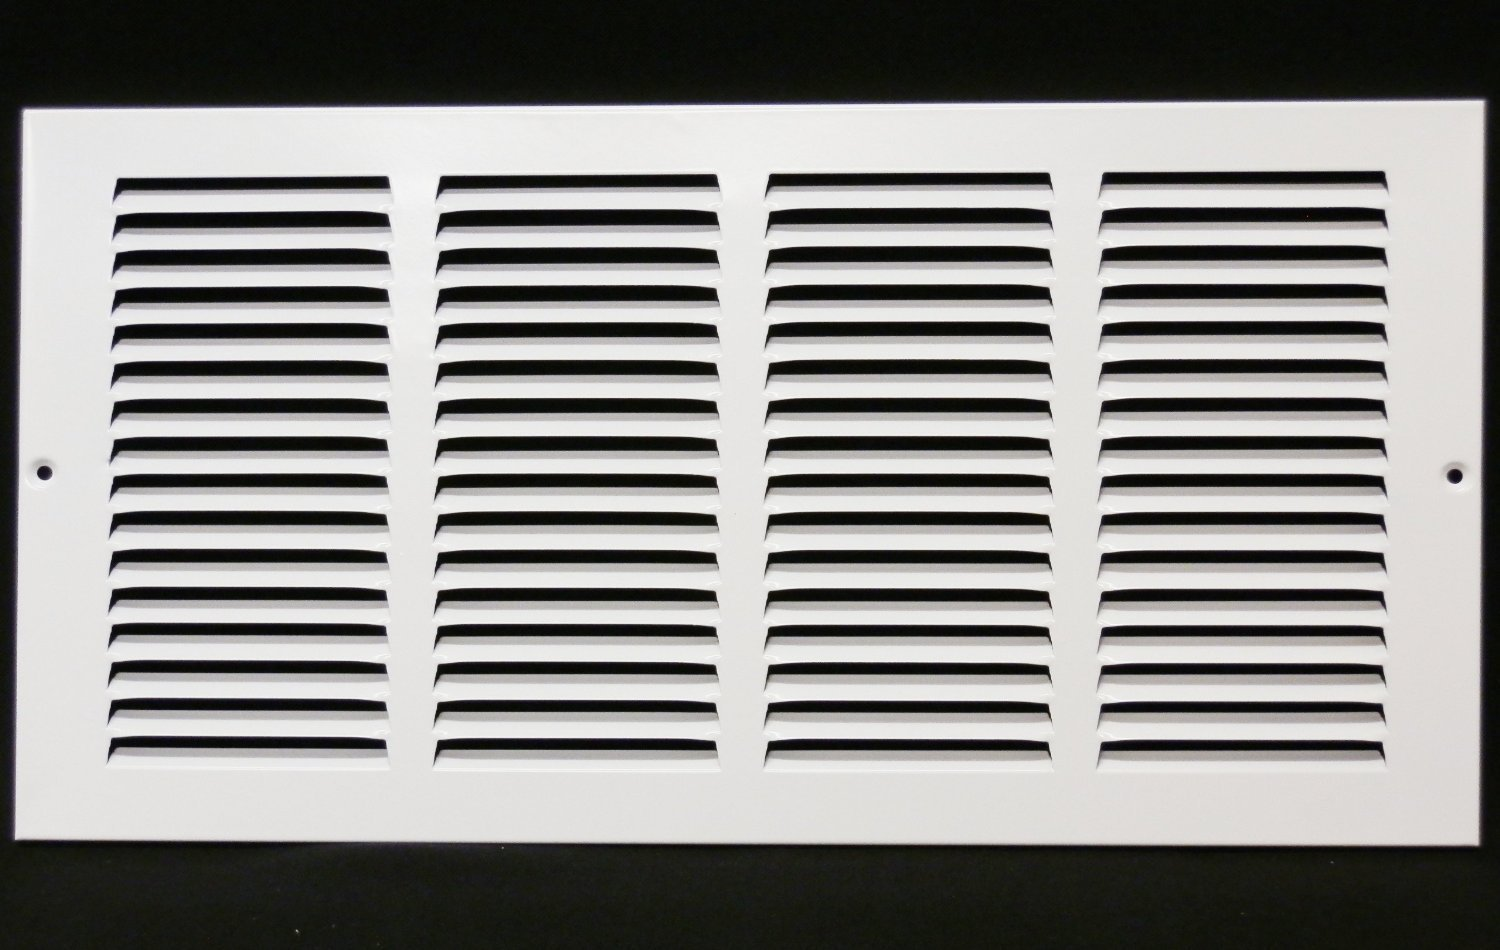 16''w X 10''h Steel Return Air Grilles - Sidewall and Cieling - HVAC DUCT COVER - White [Outer Dimensions: 17.75''w X 11.75''h]